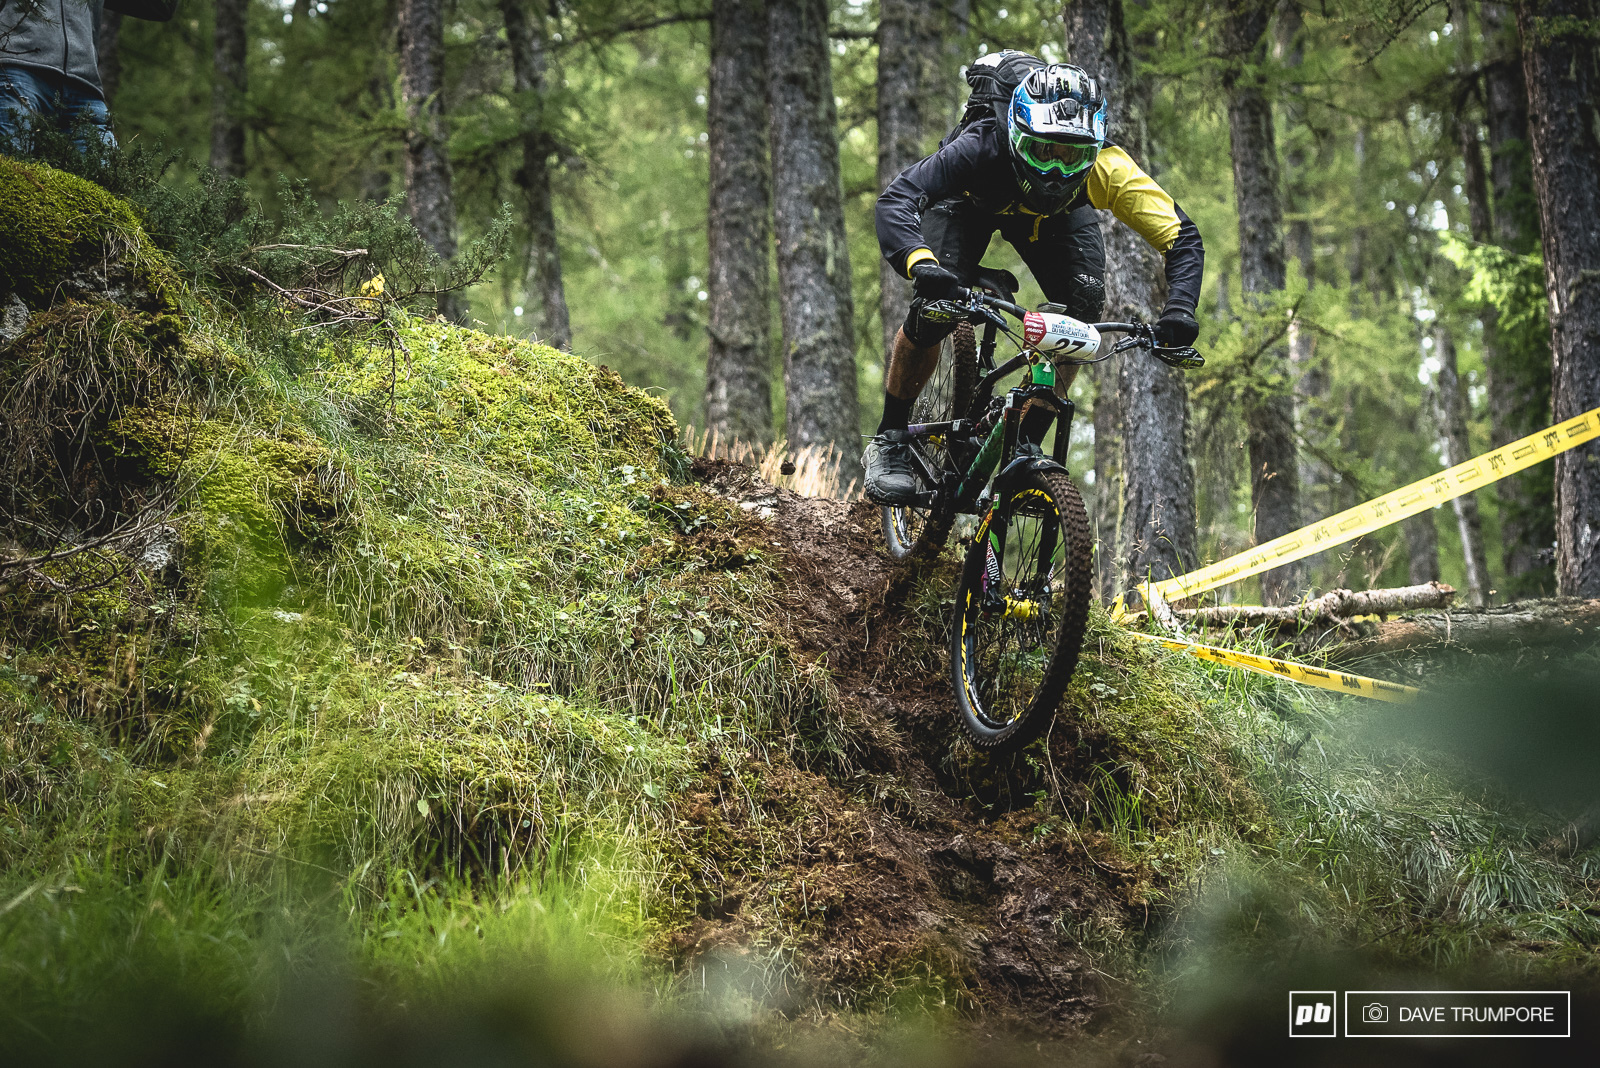 What a weekend for this guy. After two second places finishes at earlier rounds Sam Hill finally put it all together to take the win. Just days after announcing that he will contest the entire series in 2017.